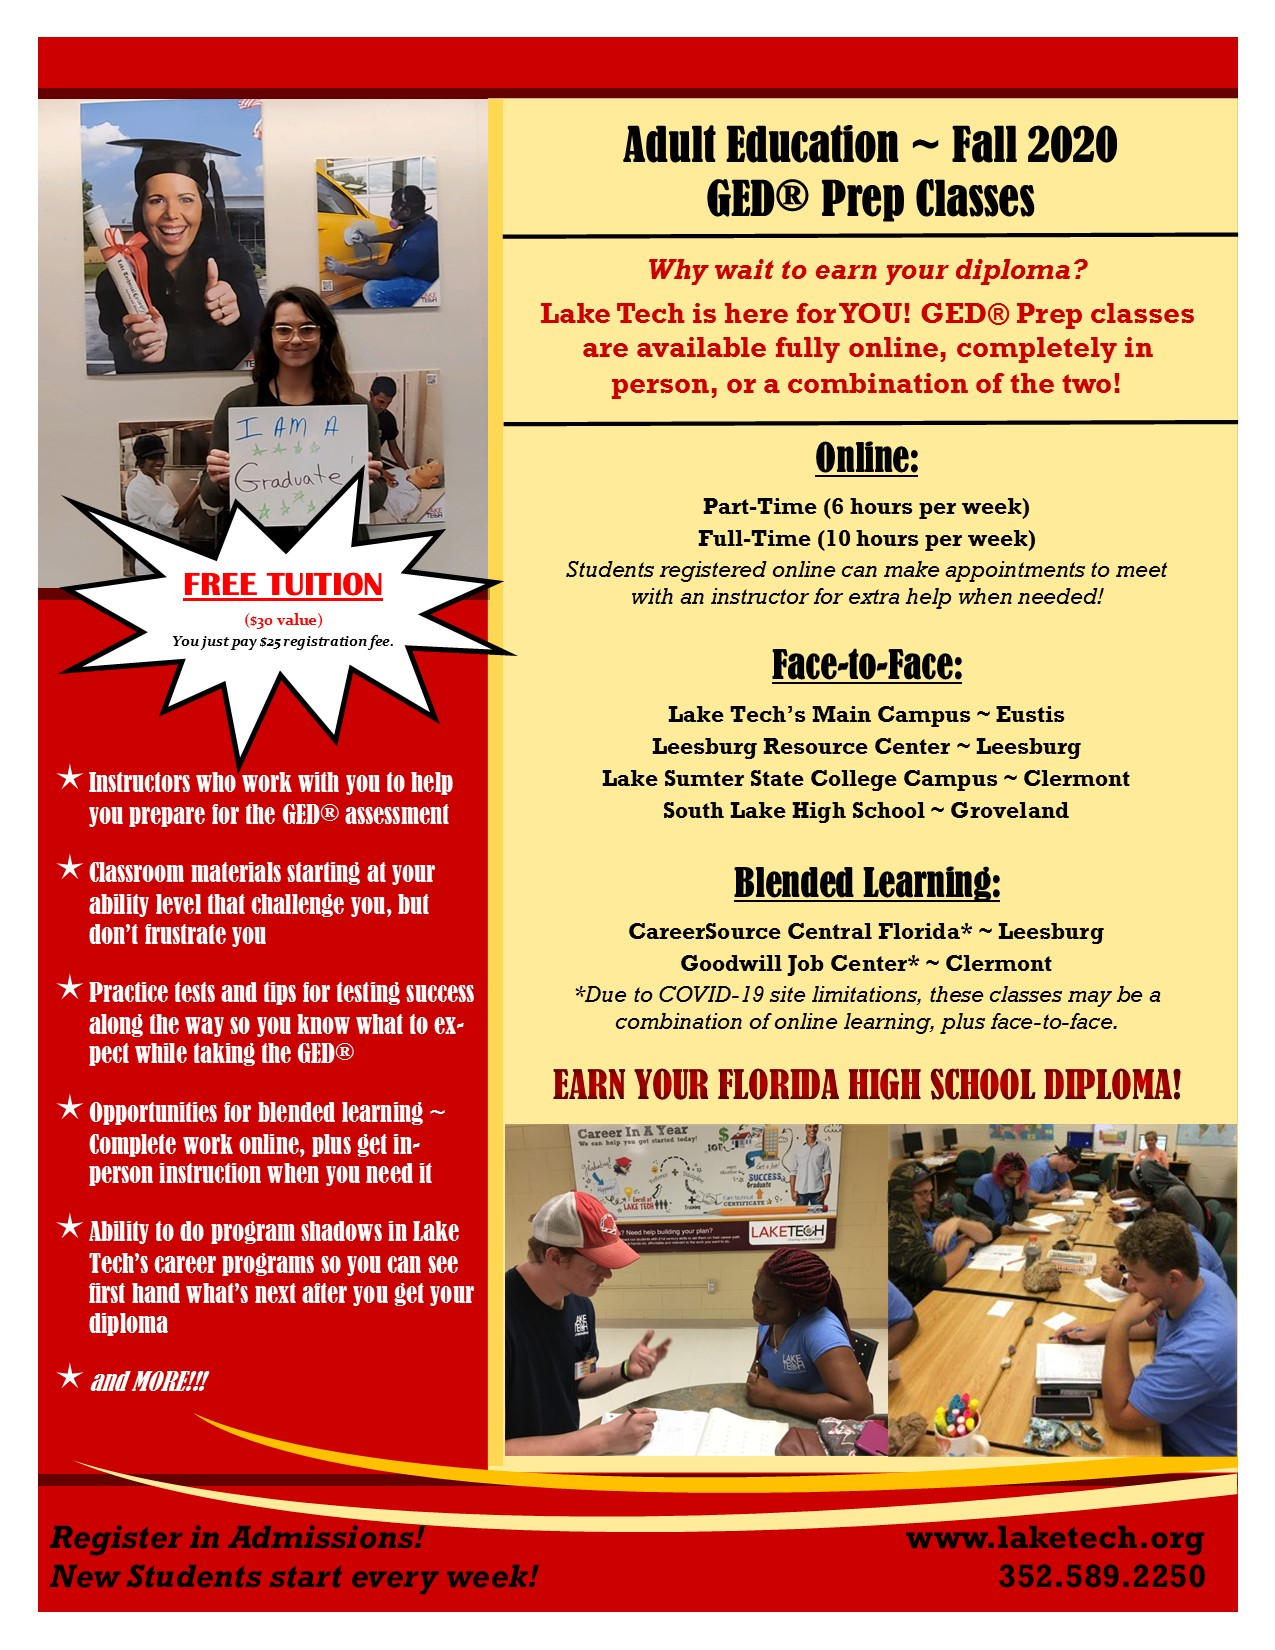 Fall 2020 GED FREE TUITION FOR ADULT EDUCATION CLASSES